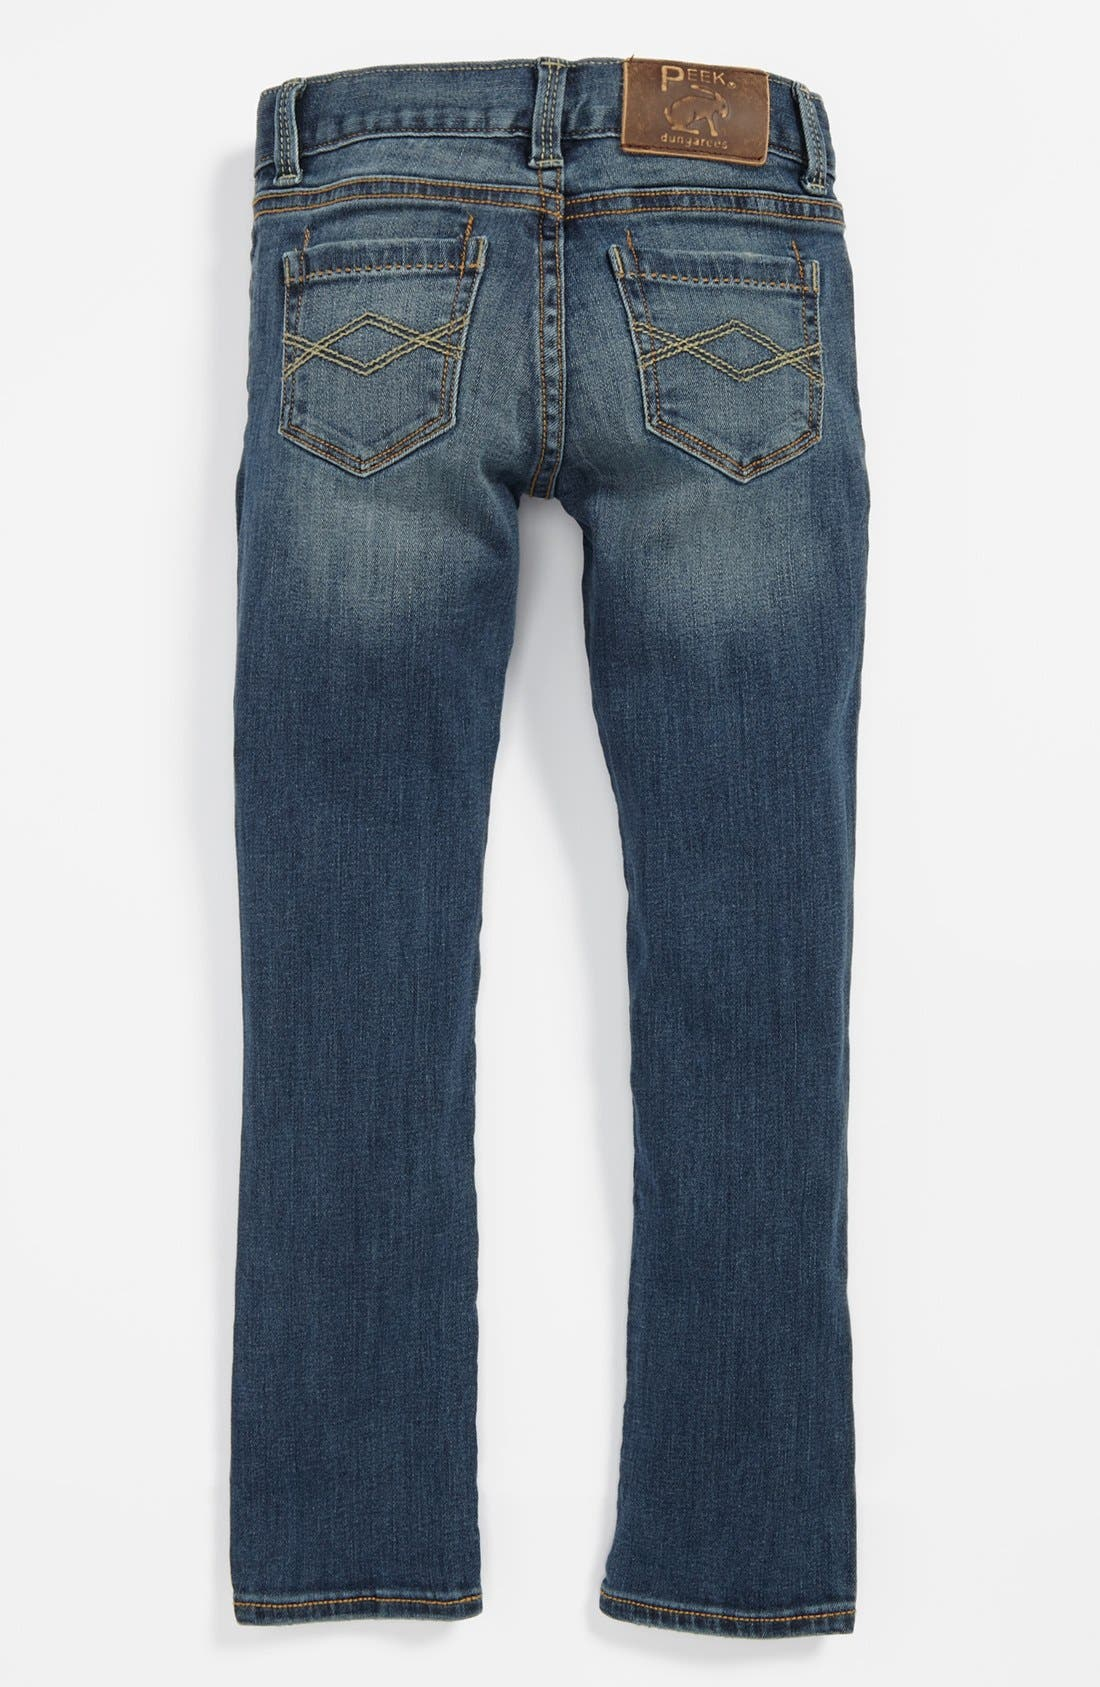 Alternate Image 1 Selected - Peek 'Audrey' Jeans (Toddler Girls, Little Girls & Big Girls)